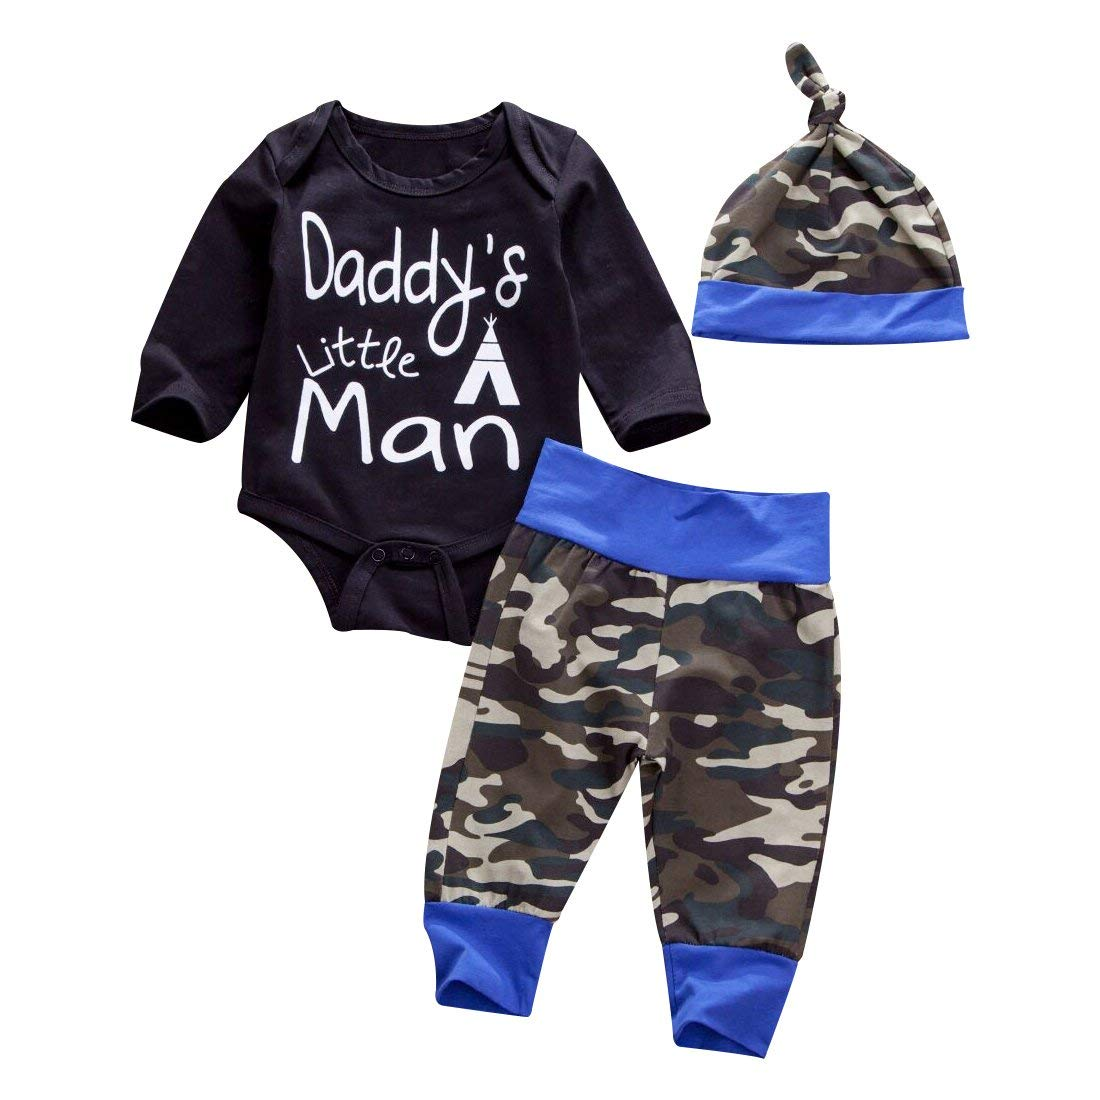 2a29c1f5 Get Quotations · Emmababy Newborn Daddy's Little Man Print Baby Boys Girls  Romper +Camo Cotton Long Pants +